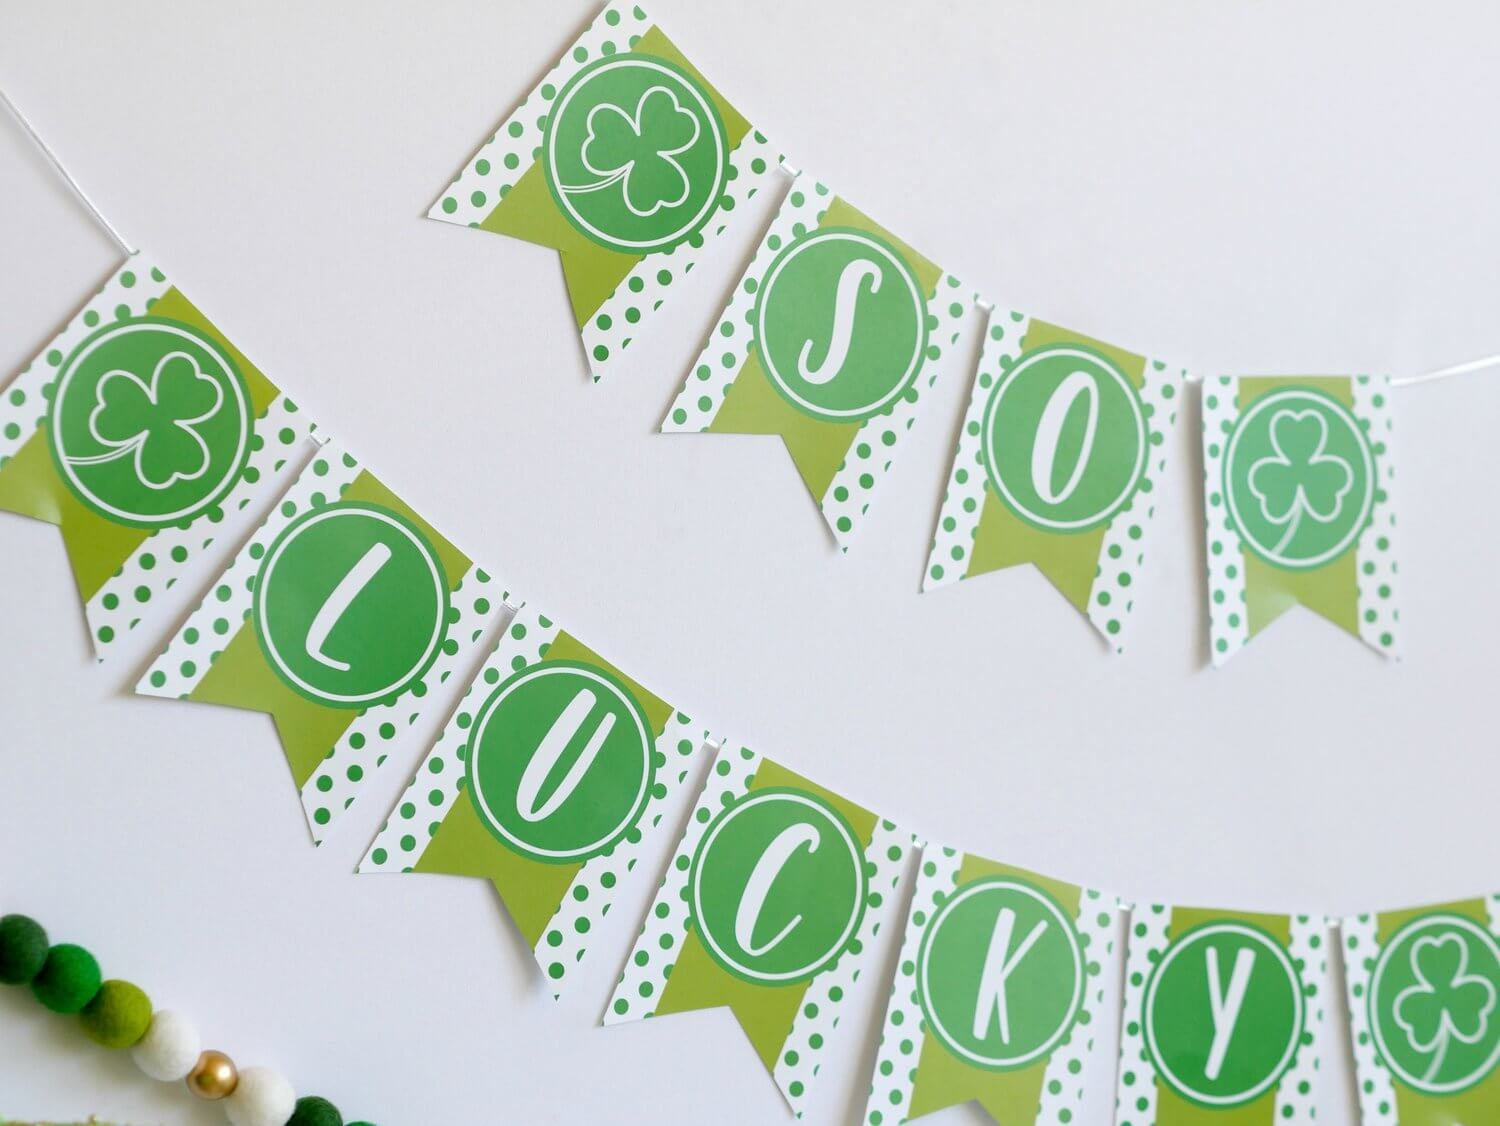 Click to download this FREE party banner for Saint Patricks Day that reads So Lucky with shamrocks and polka dots. As seen on Mint Event Design www.minteventdesign.com #partyideas #partydecorations #freeprintables #saintpatricksday #stpatricksday #shamrock #partybanner